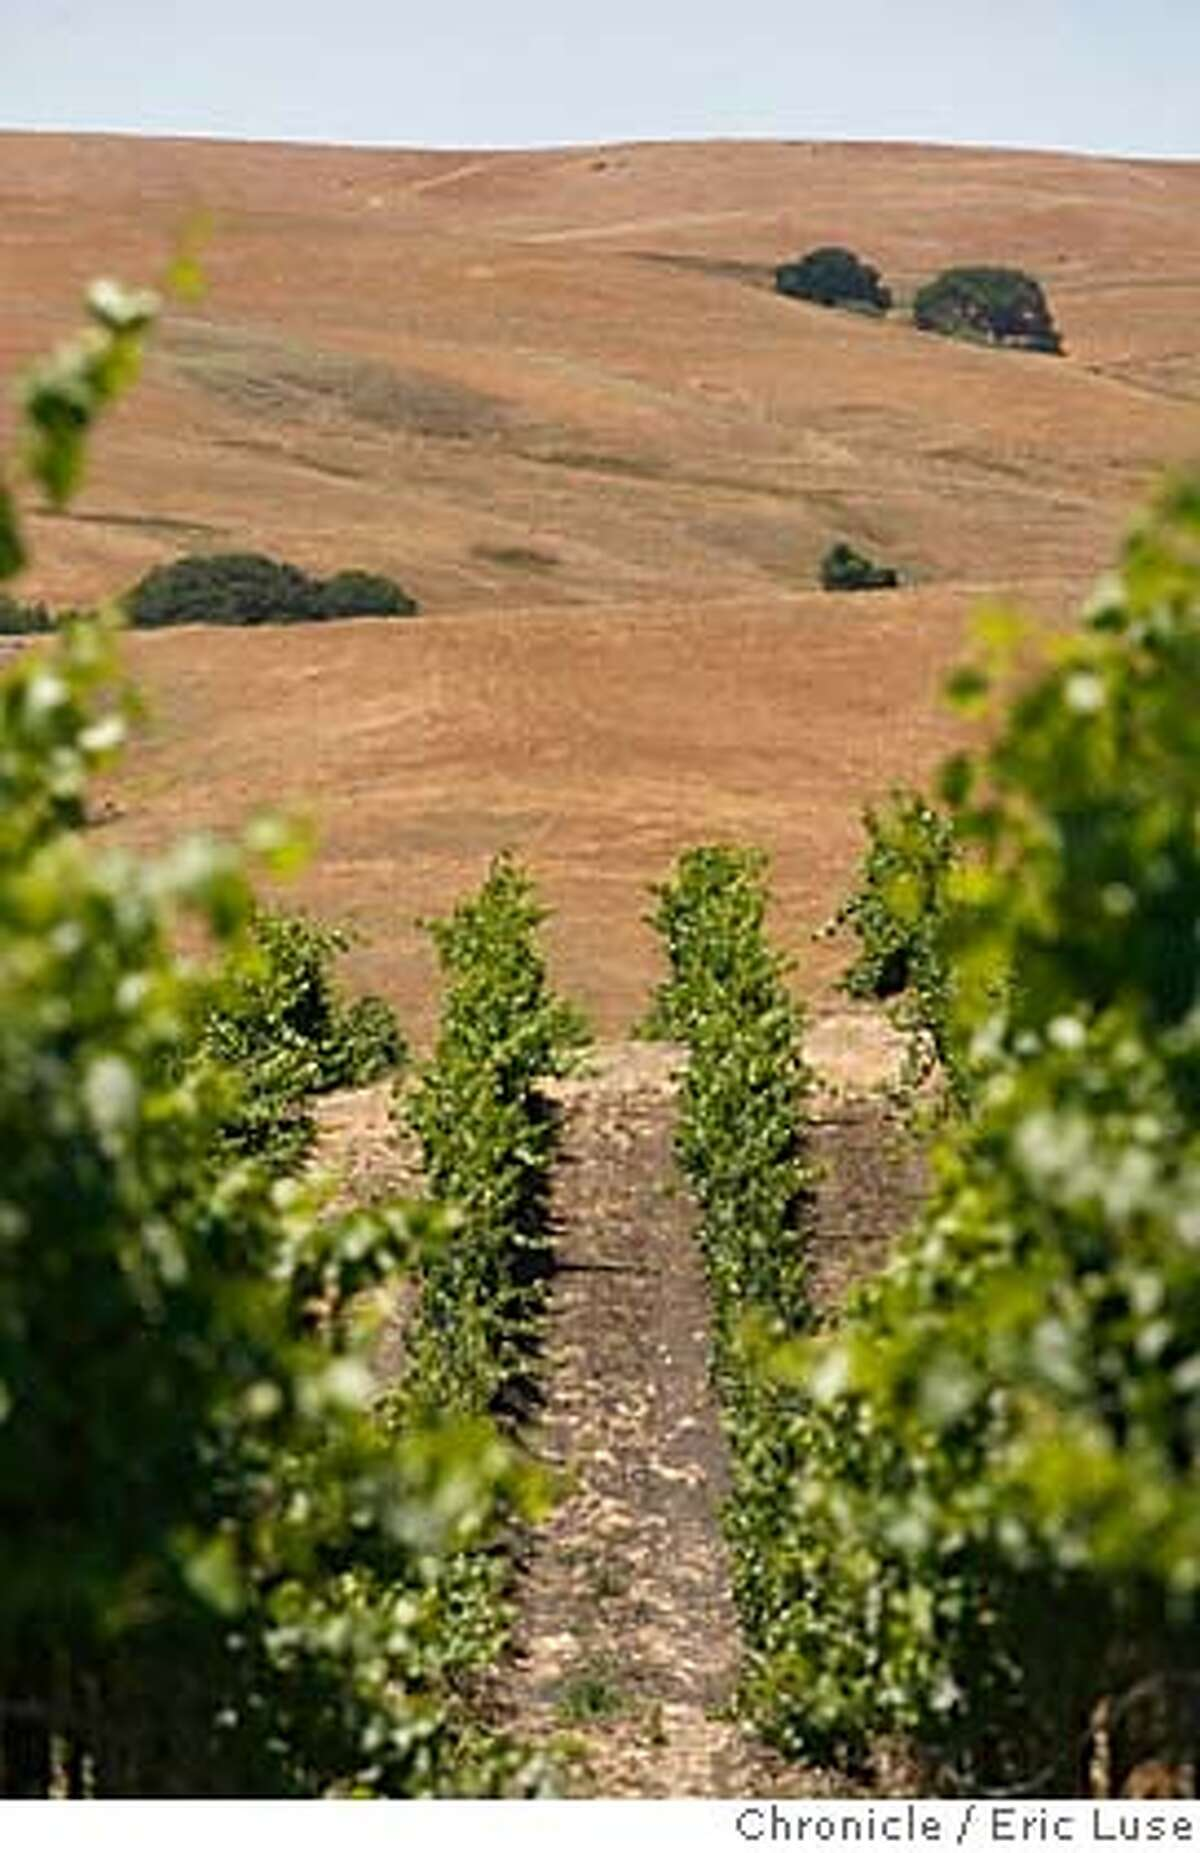 globalwarming115_el.jpg Arid brown hills of dried grass south of Roche Vineyard in Sonoma County. Global warming and it's effect on vineyard's. Photographed in Sonoma Eric Luse/The Chronicle names (cq) from source MANDATORY CREDIT FOR PHOTOG /